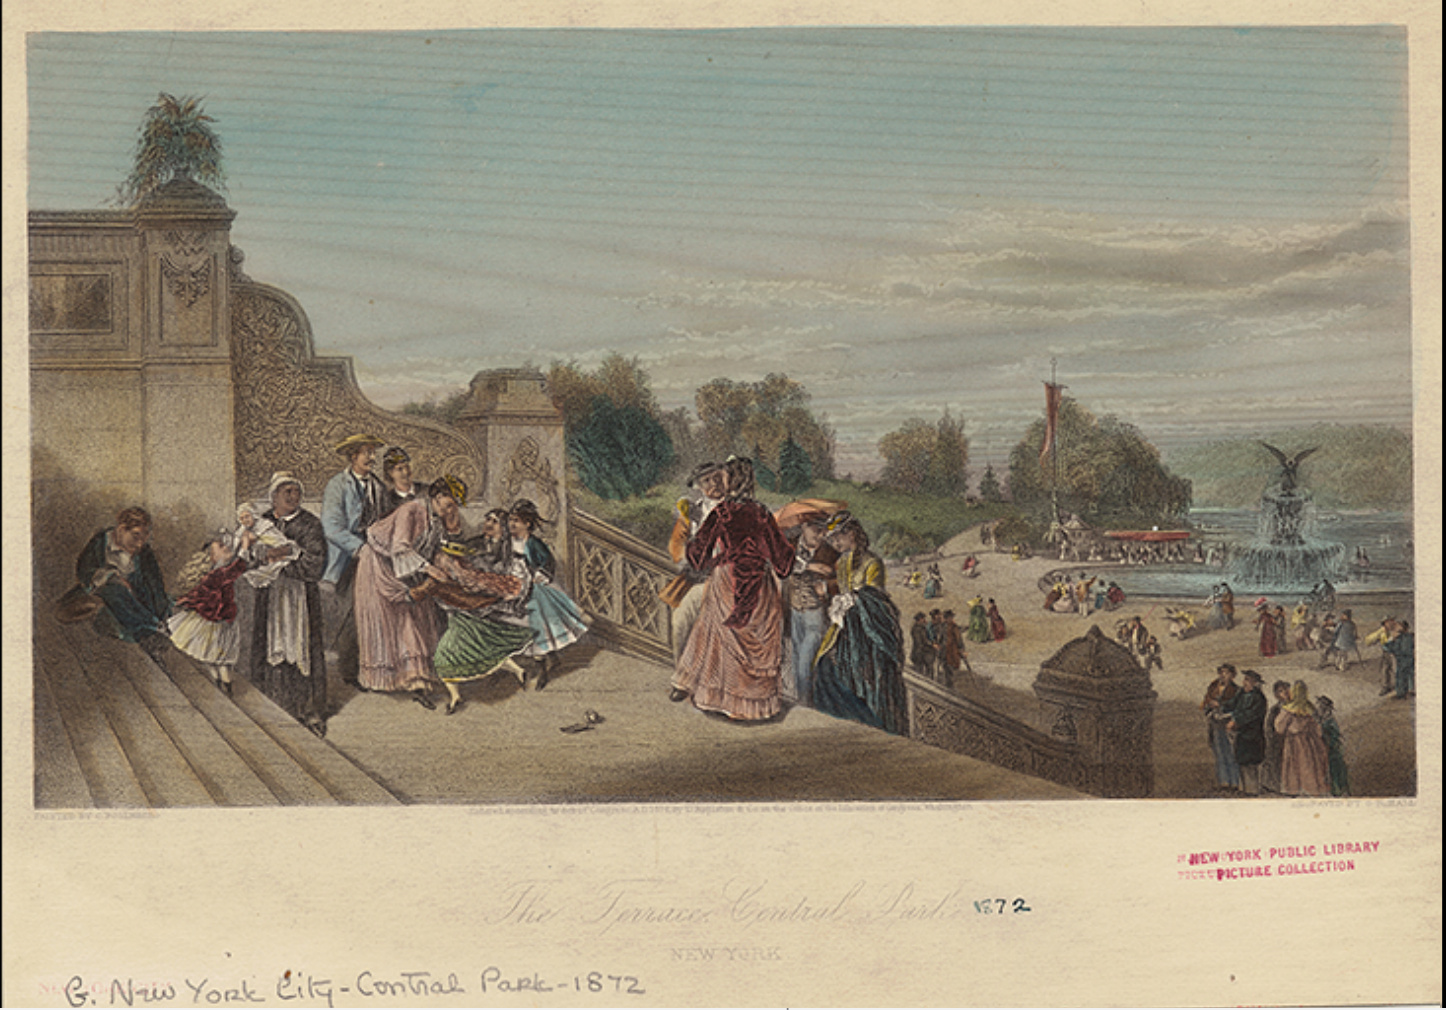 1872-the-terrace-central-park-new-york-1872